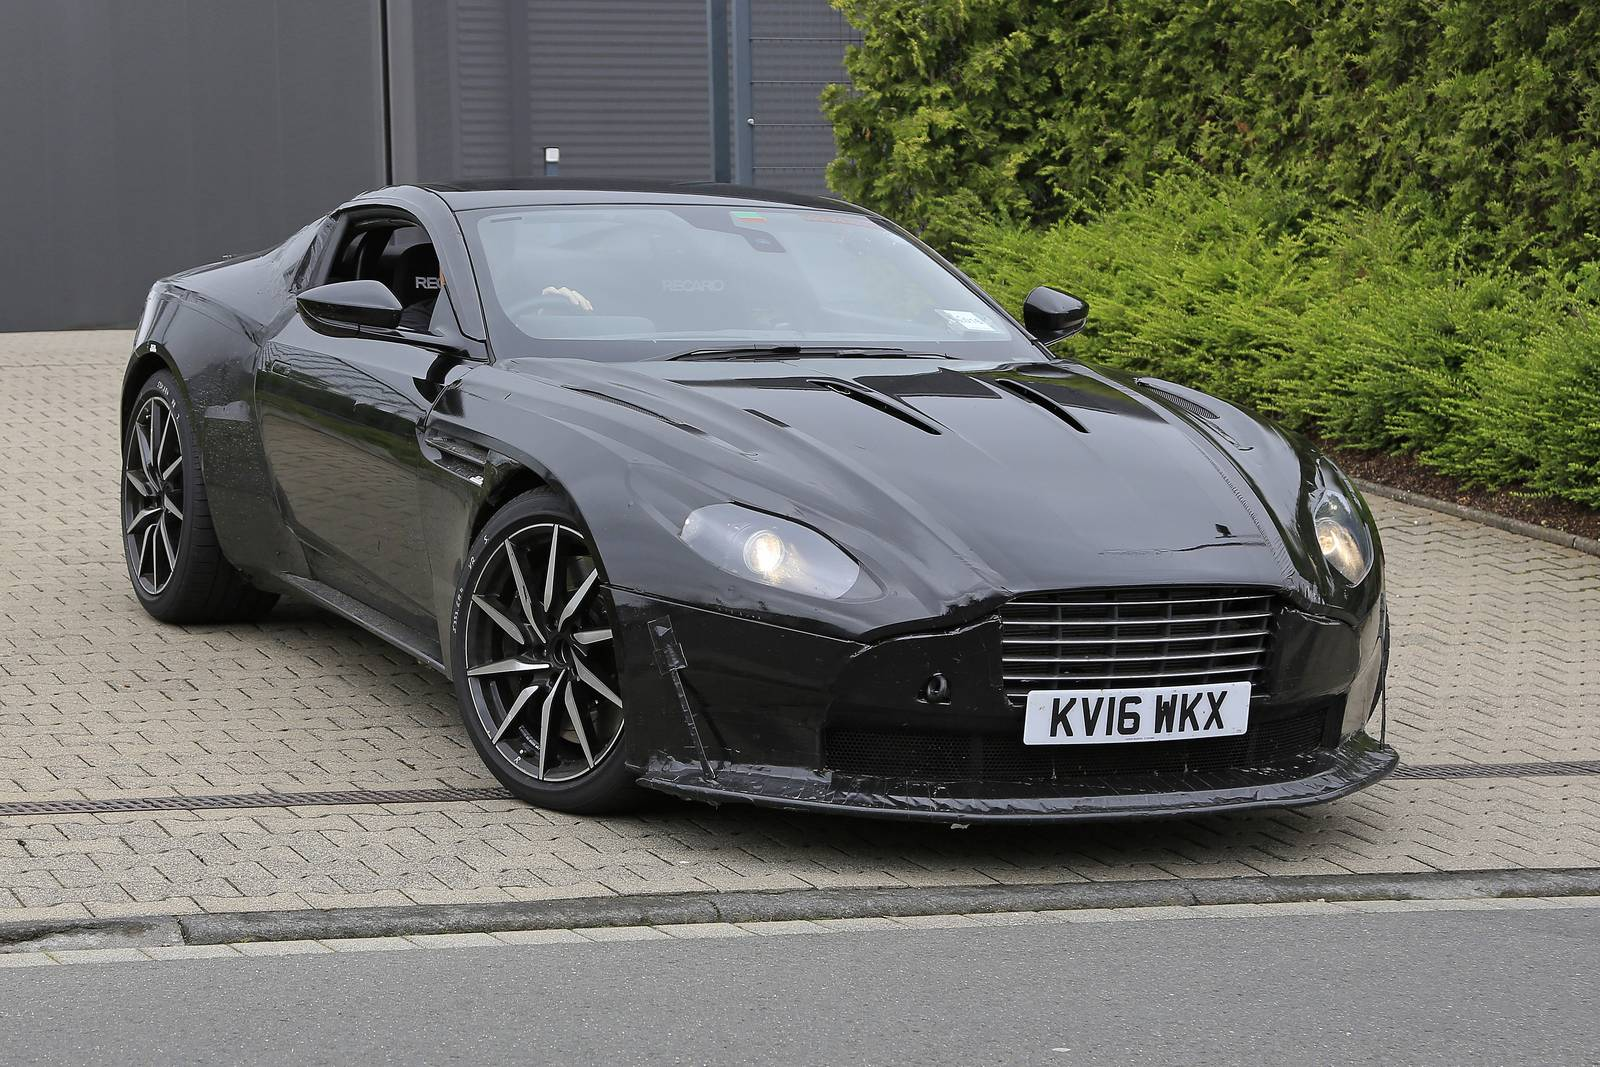 amg powered aston martin vantage first spy shots gtspirit. Black Bedroom Furniture Sets. Home Design Ideas